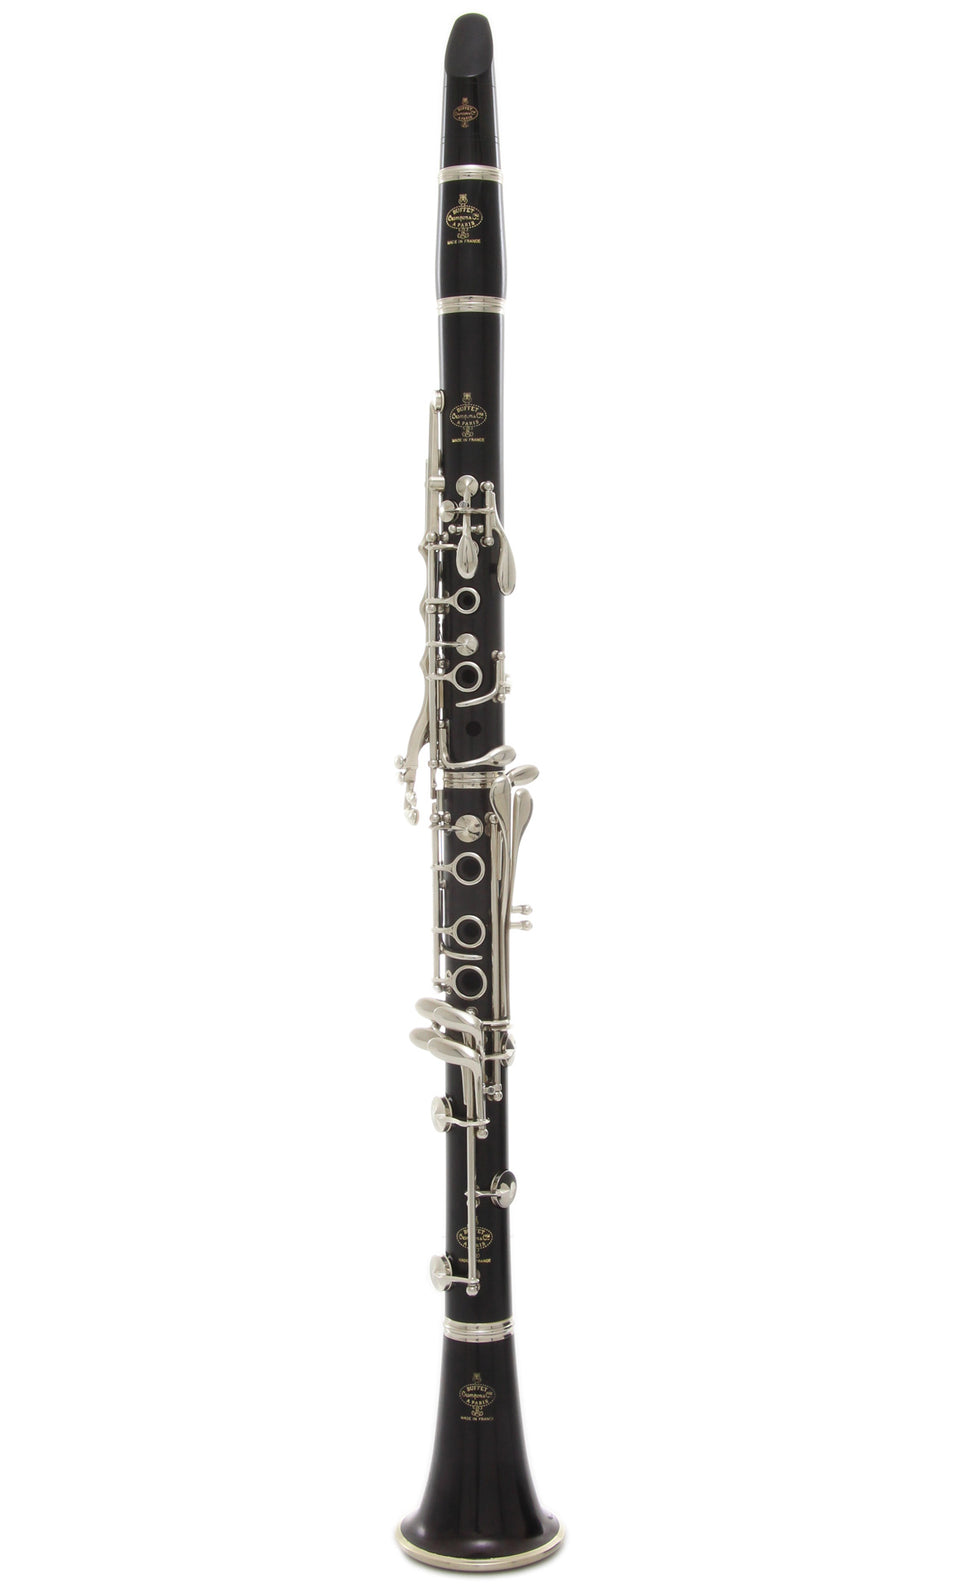 Buffet Crampon BC1231-5-0 R13 A Clarinet, Nickel Plated Keys